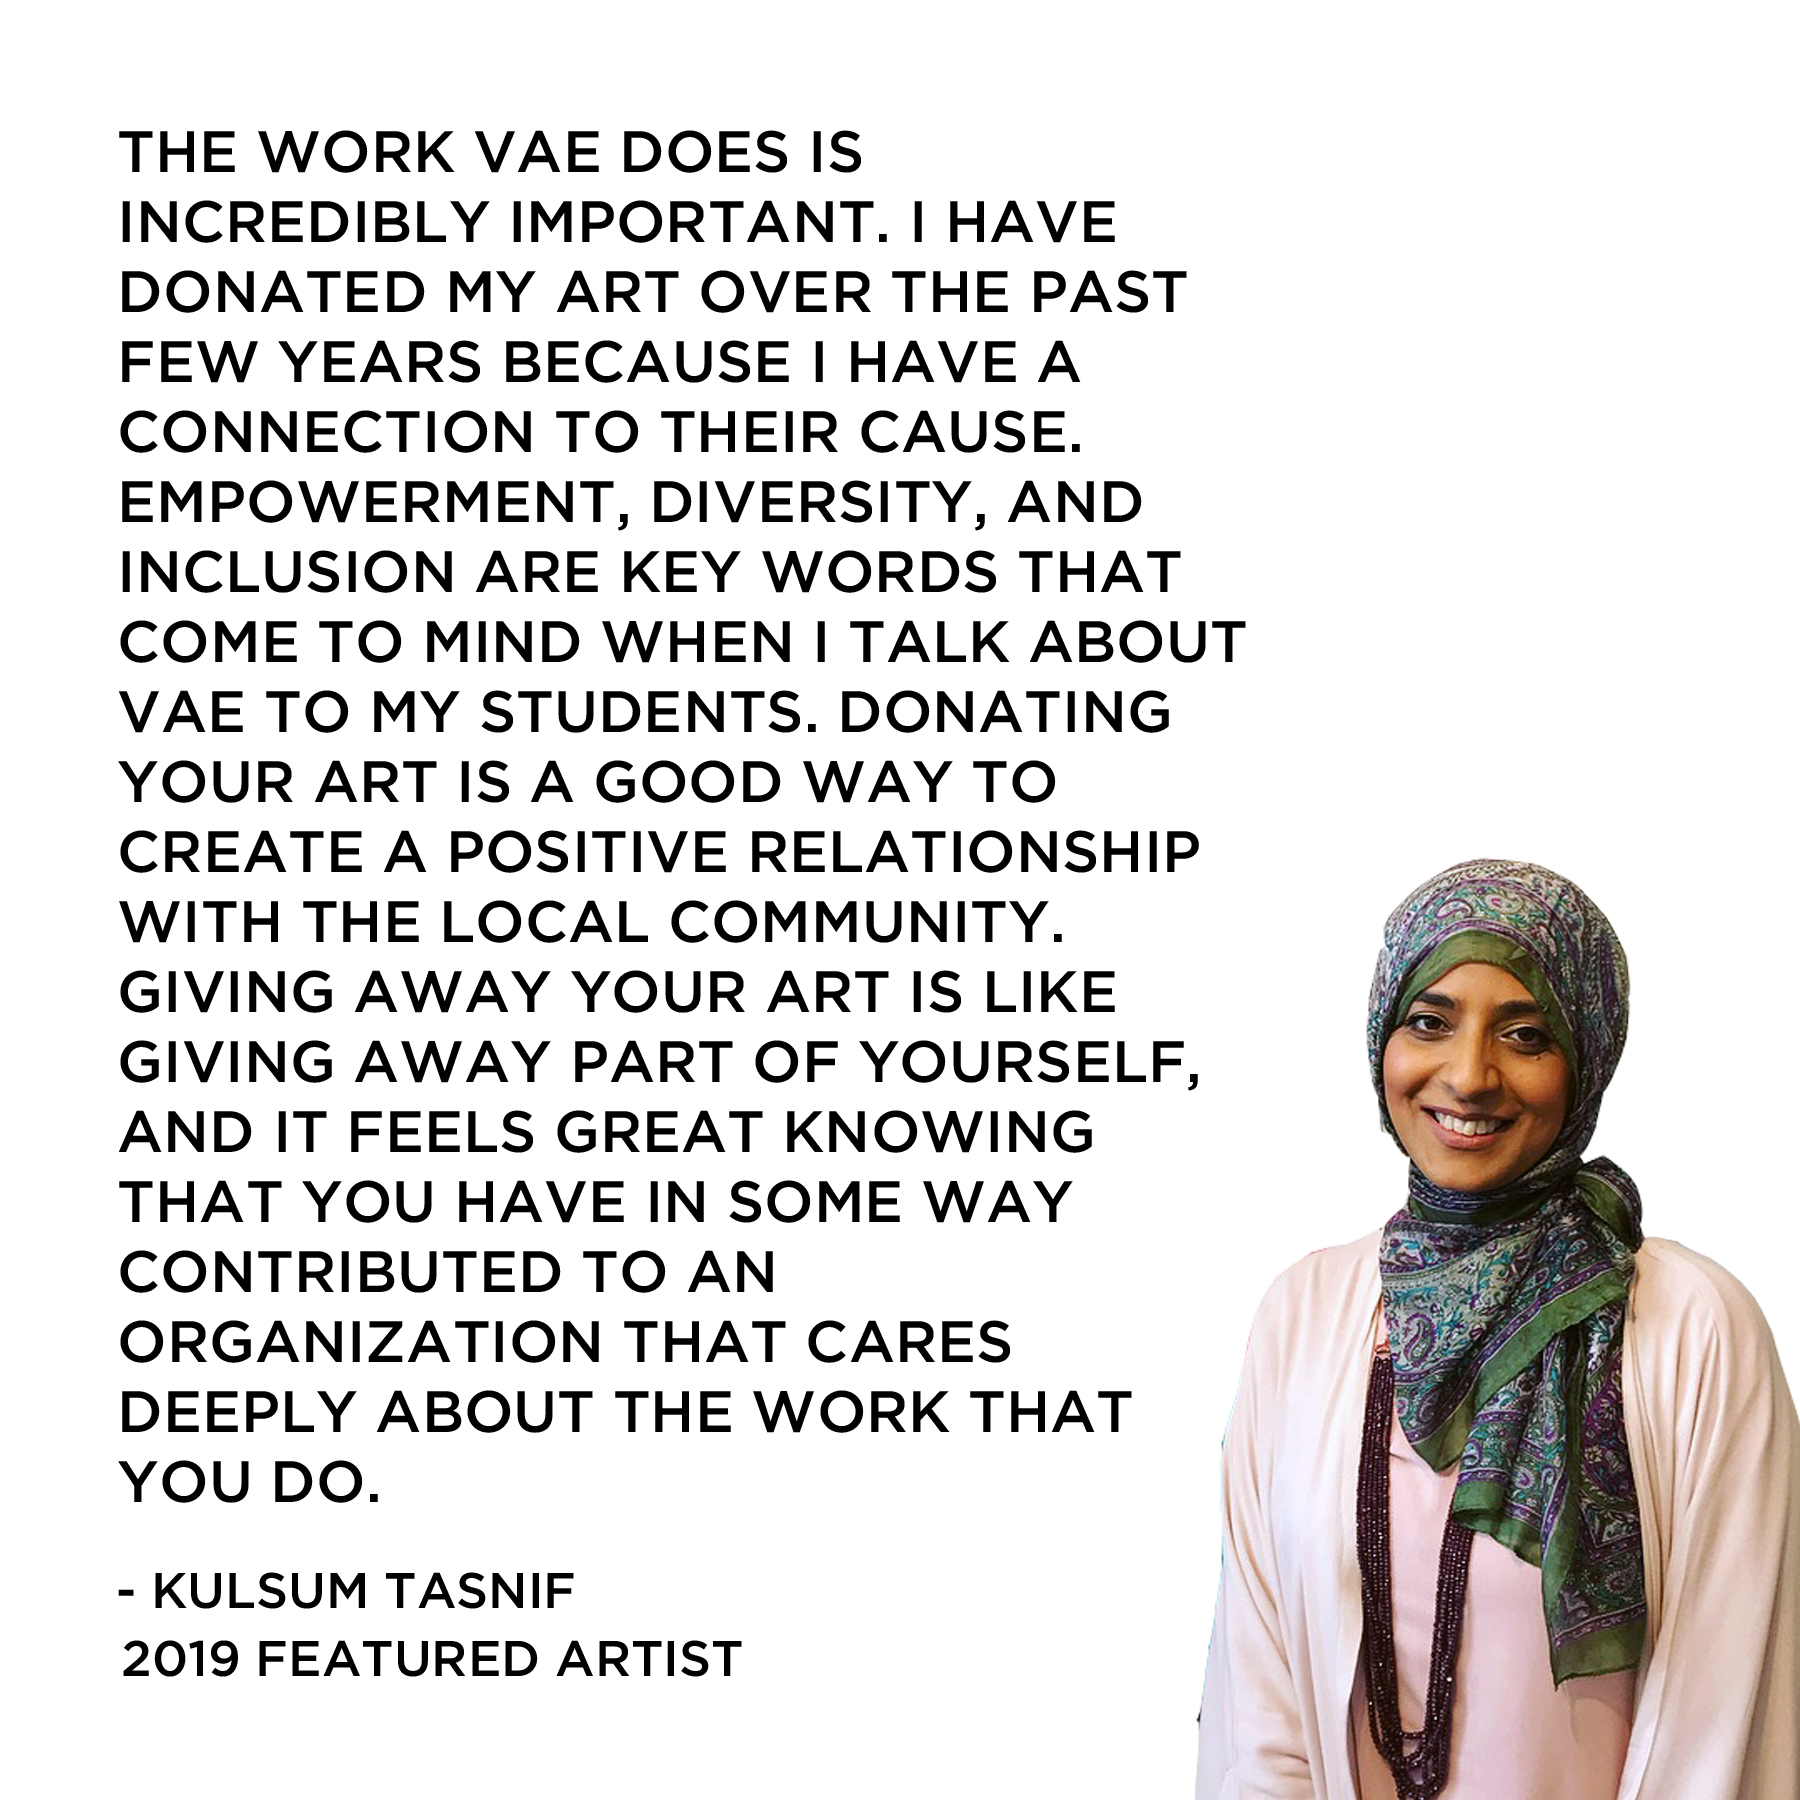 The work VAE does is incredibly important. I have donated my art over the past few years because I have a connection to their cause. Empowerment, diversity, and inclusion are key words that come to mind when I talk about VAE to my students. Donating your art is a good way to create a positive relationship with the local community. Giving away your art is like giving away part of yourself, and it feels great knowing that you have in some way contributed to an organization that cares deeply about the work that you do.